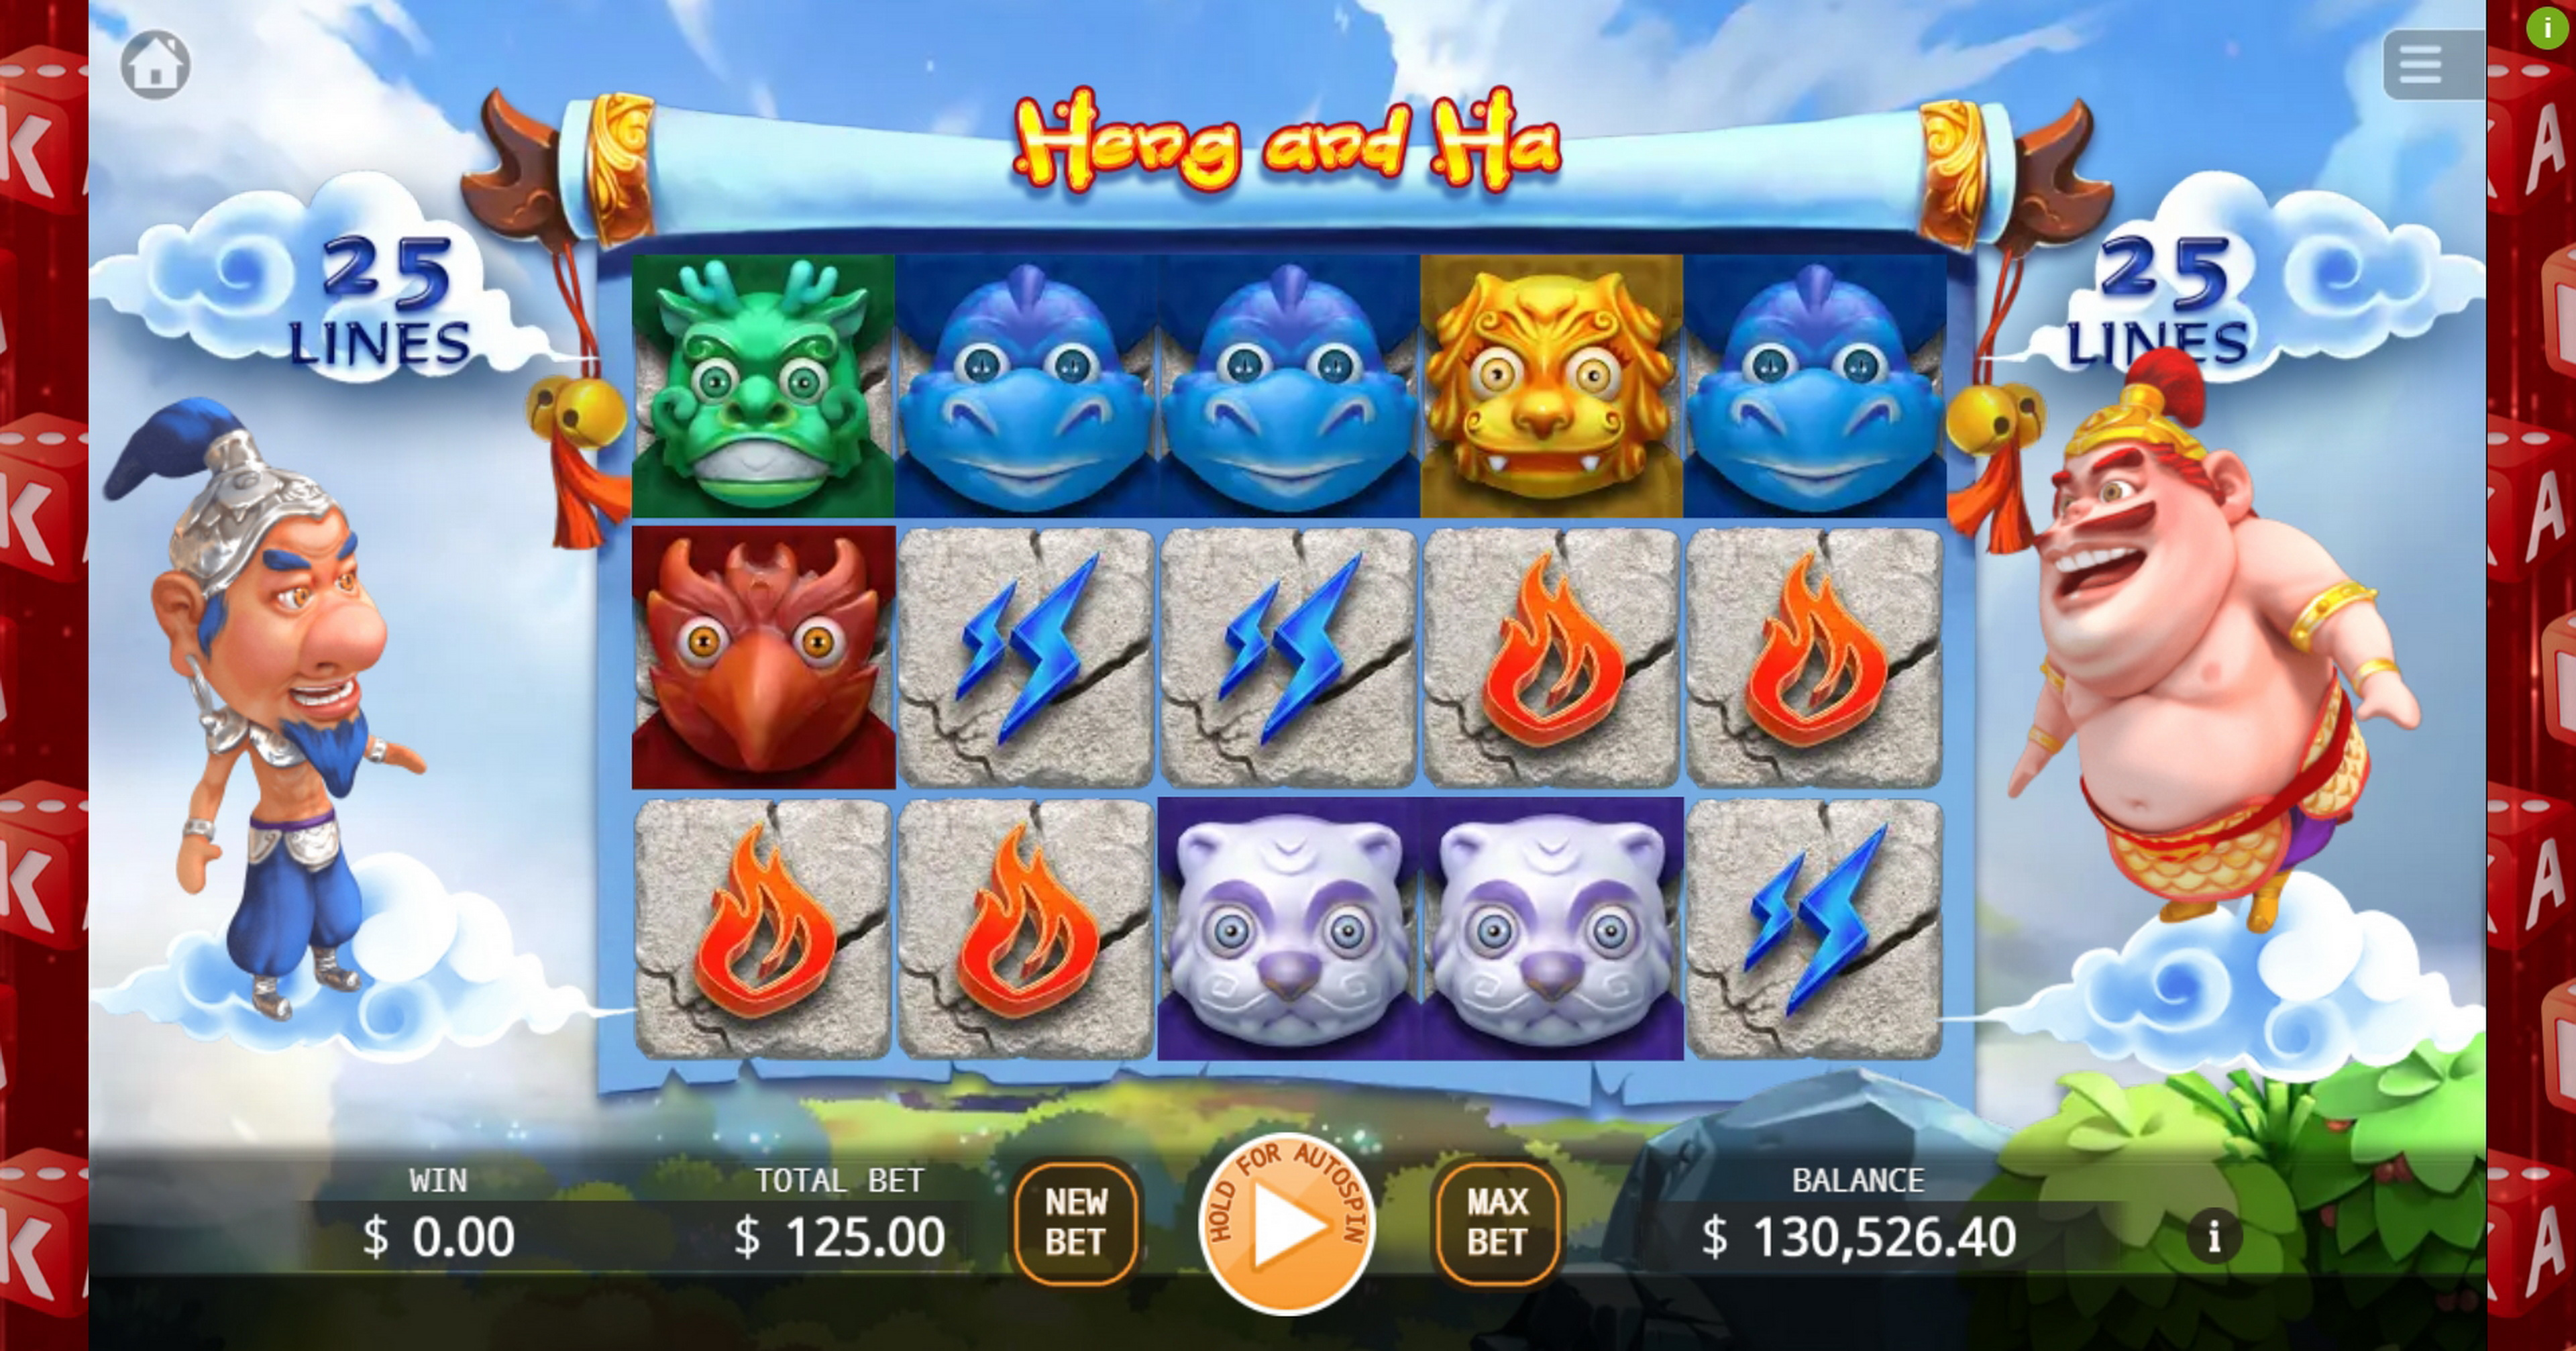 Play Heng and Ha Free Casino Slot Game by KA Gaming